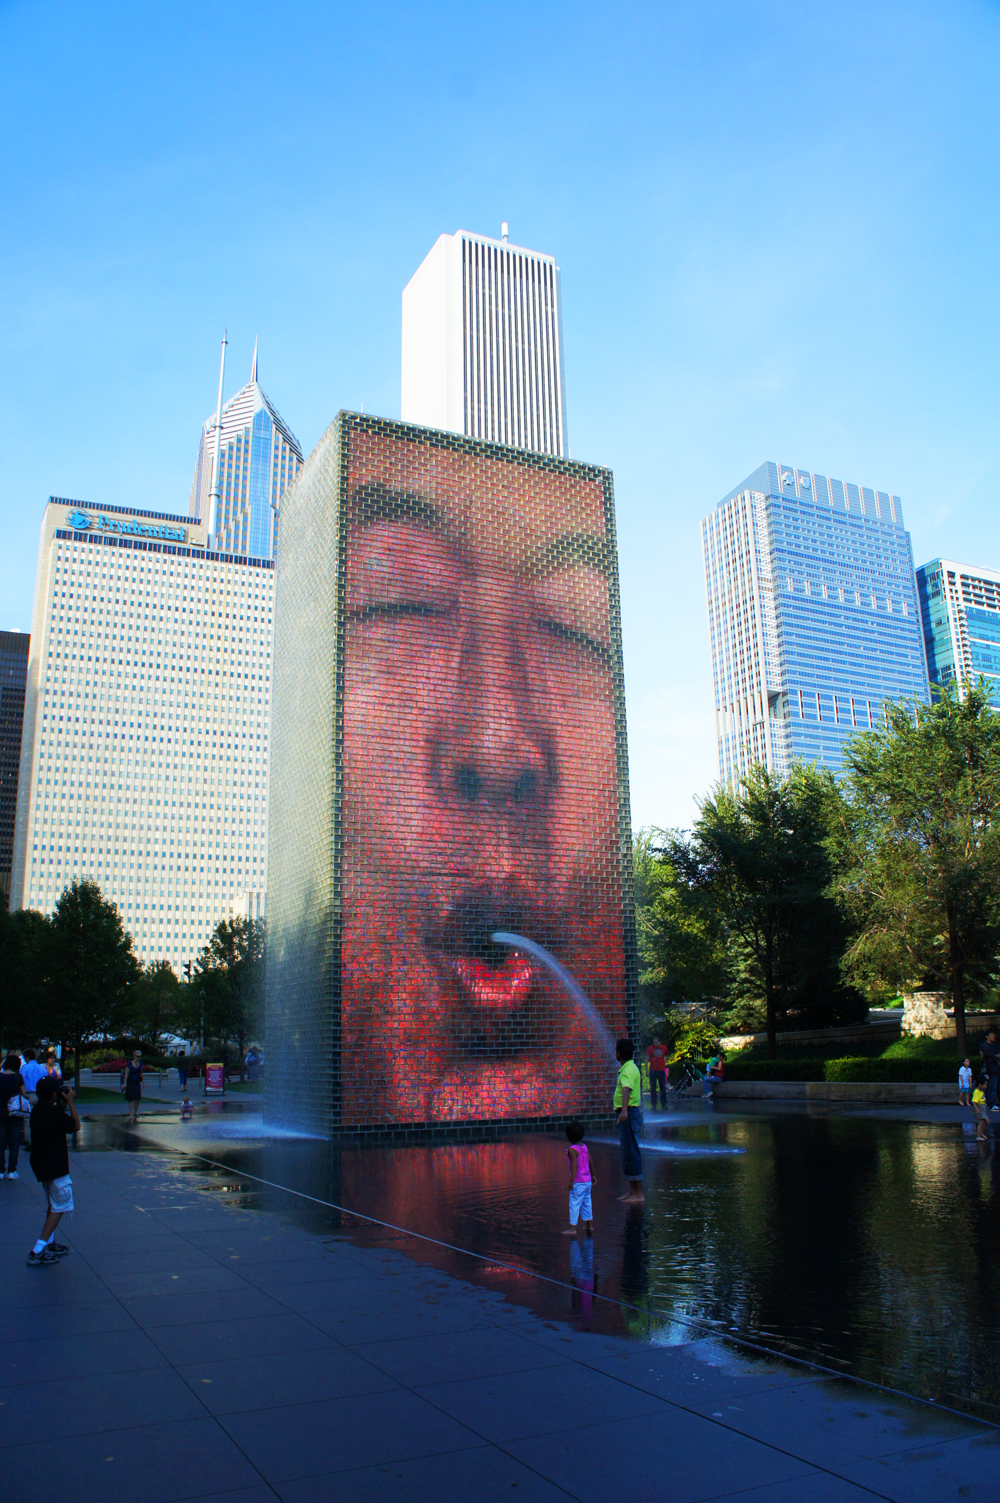 Crown Fountain, Millennium Park. Image courtesy of Laura Schmahmann.